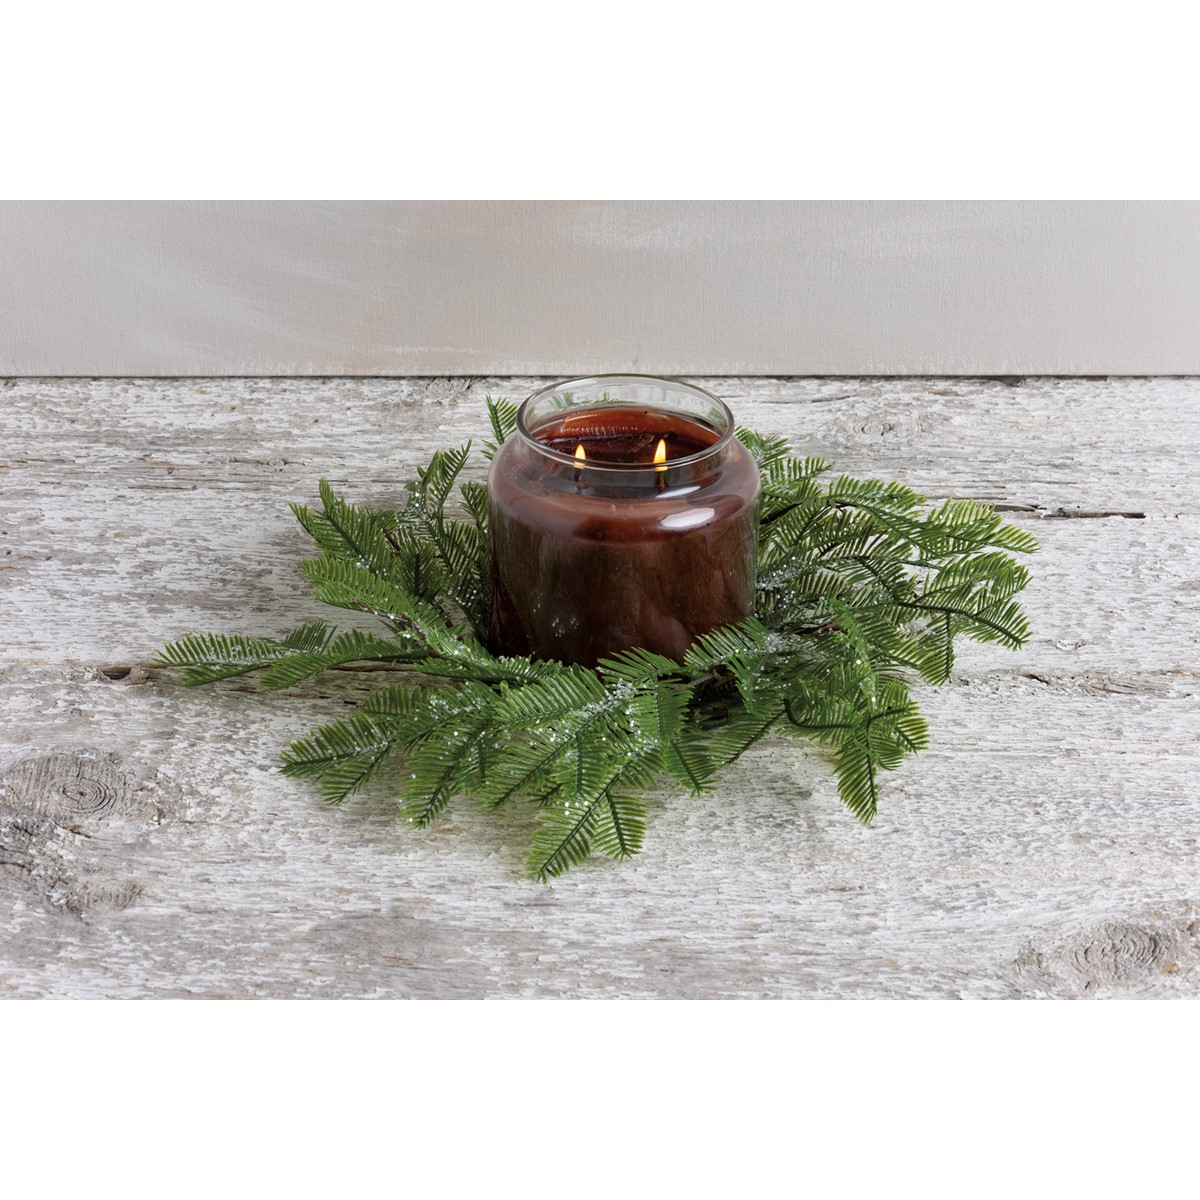 "Candle Ring - Lg Greens - 5"" Outside Diameter - Plastic, Wire, Glitter"